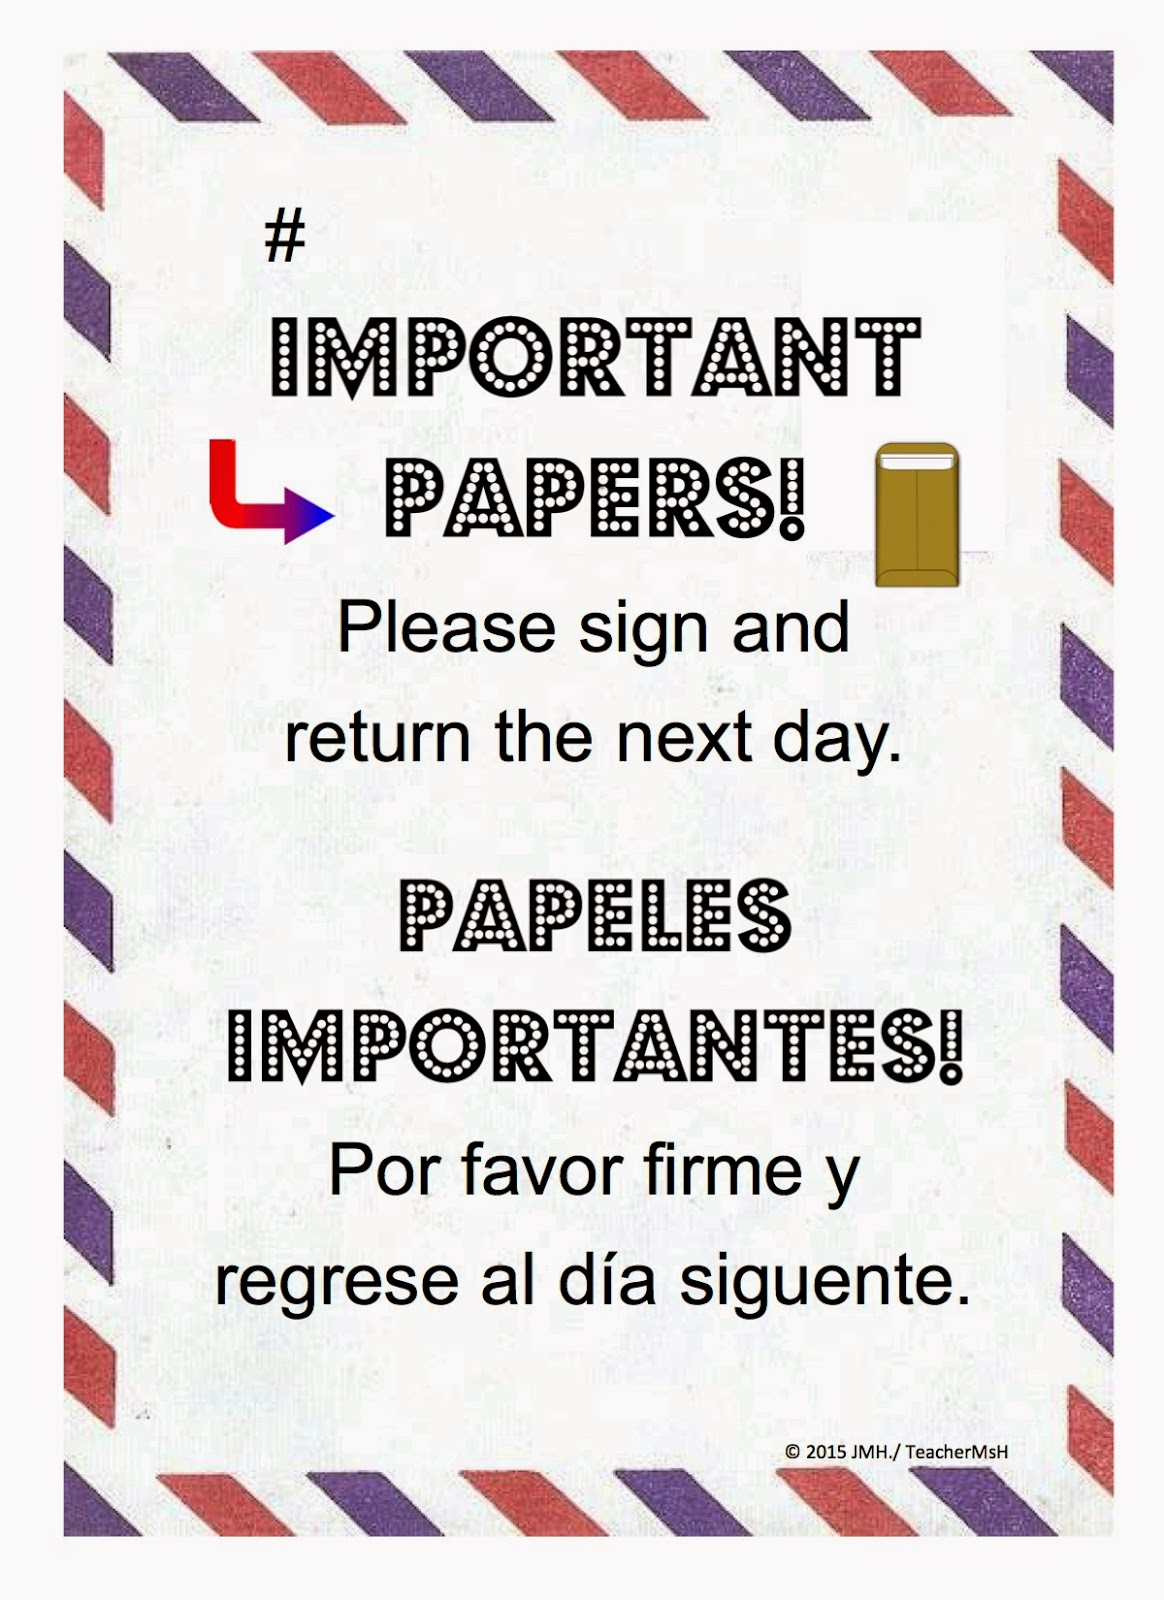 FREE Return Important Papers Note ~ Use as a cover for Laminated Manila Envelopes ~ Just English or with Spanish too!